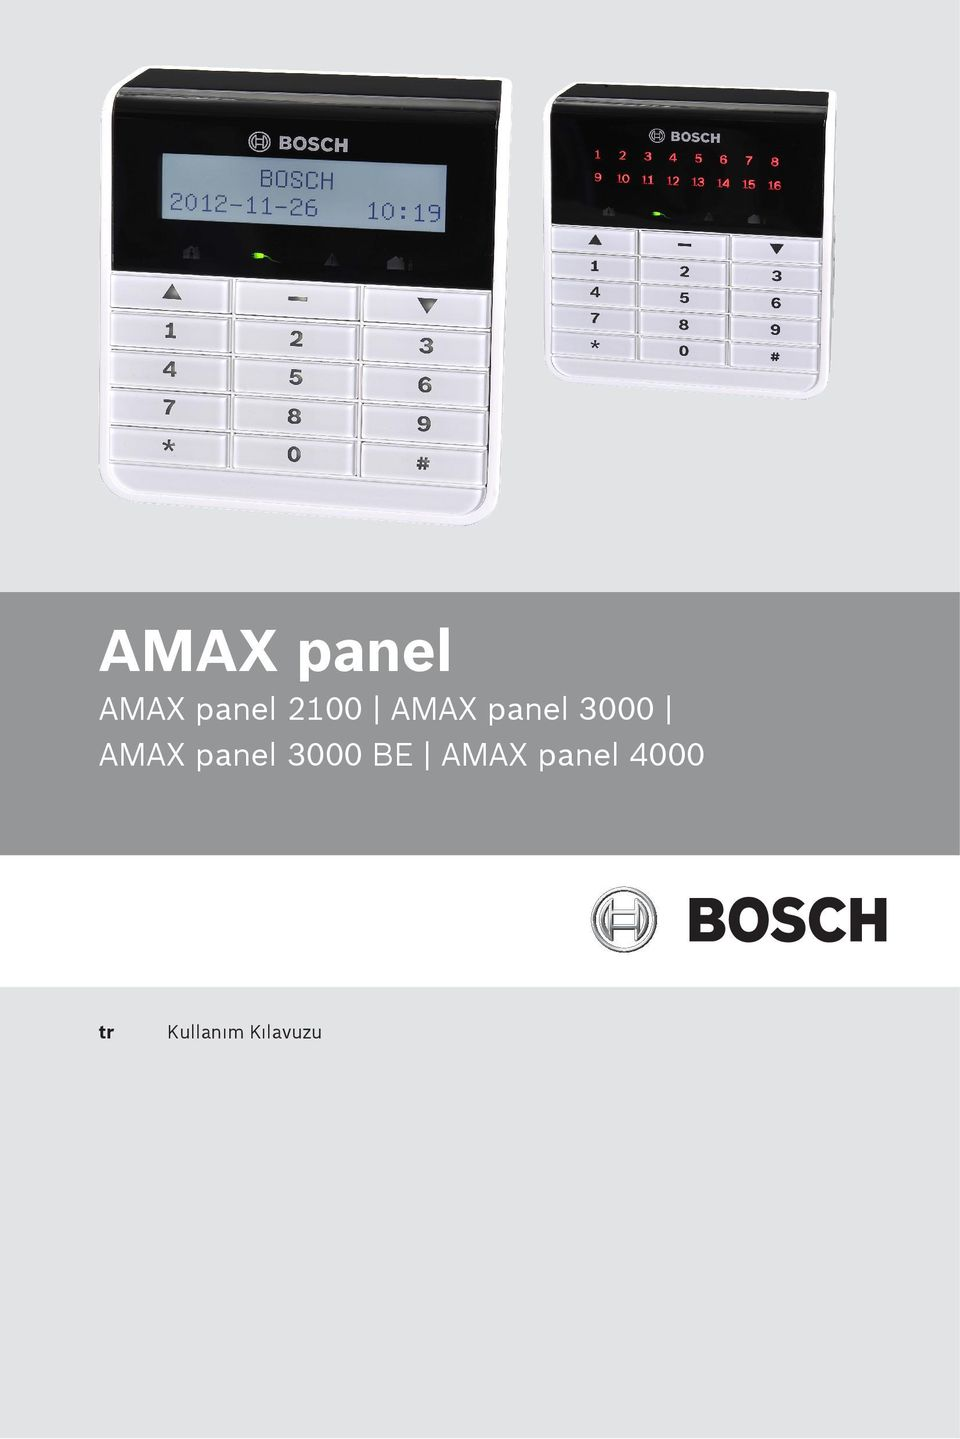 AMAX panel 3000 BE AMAX